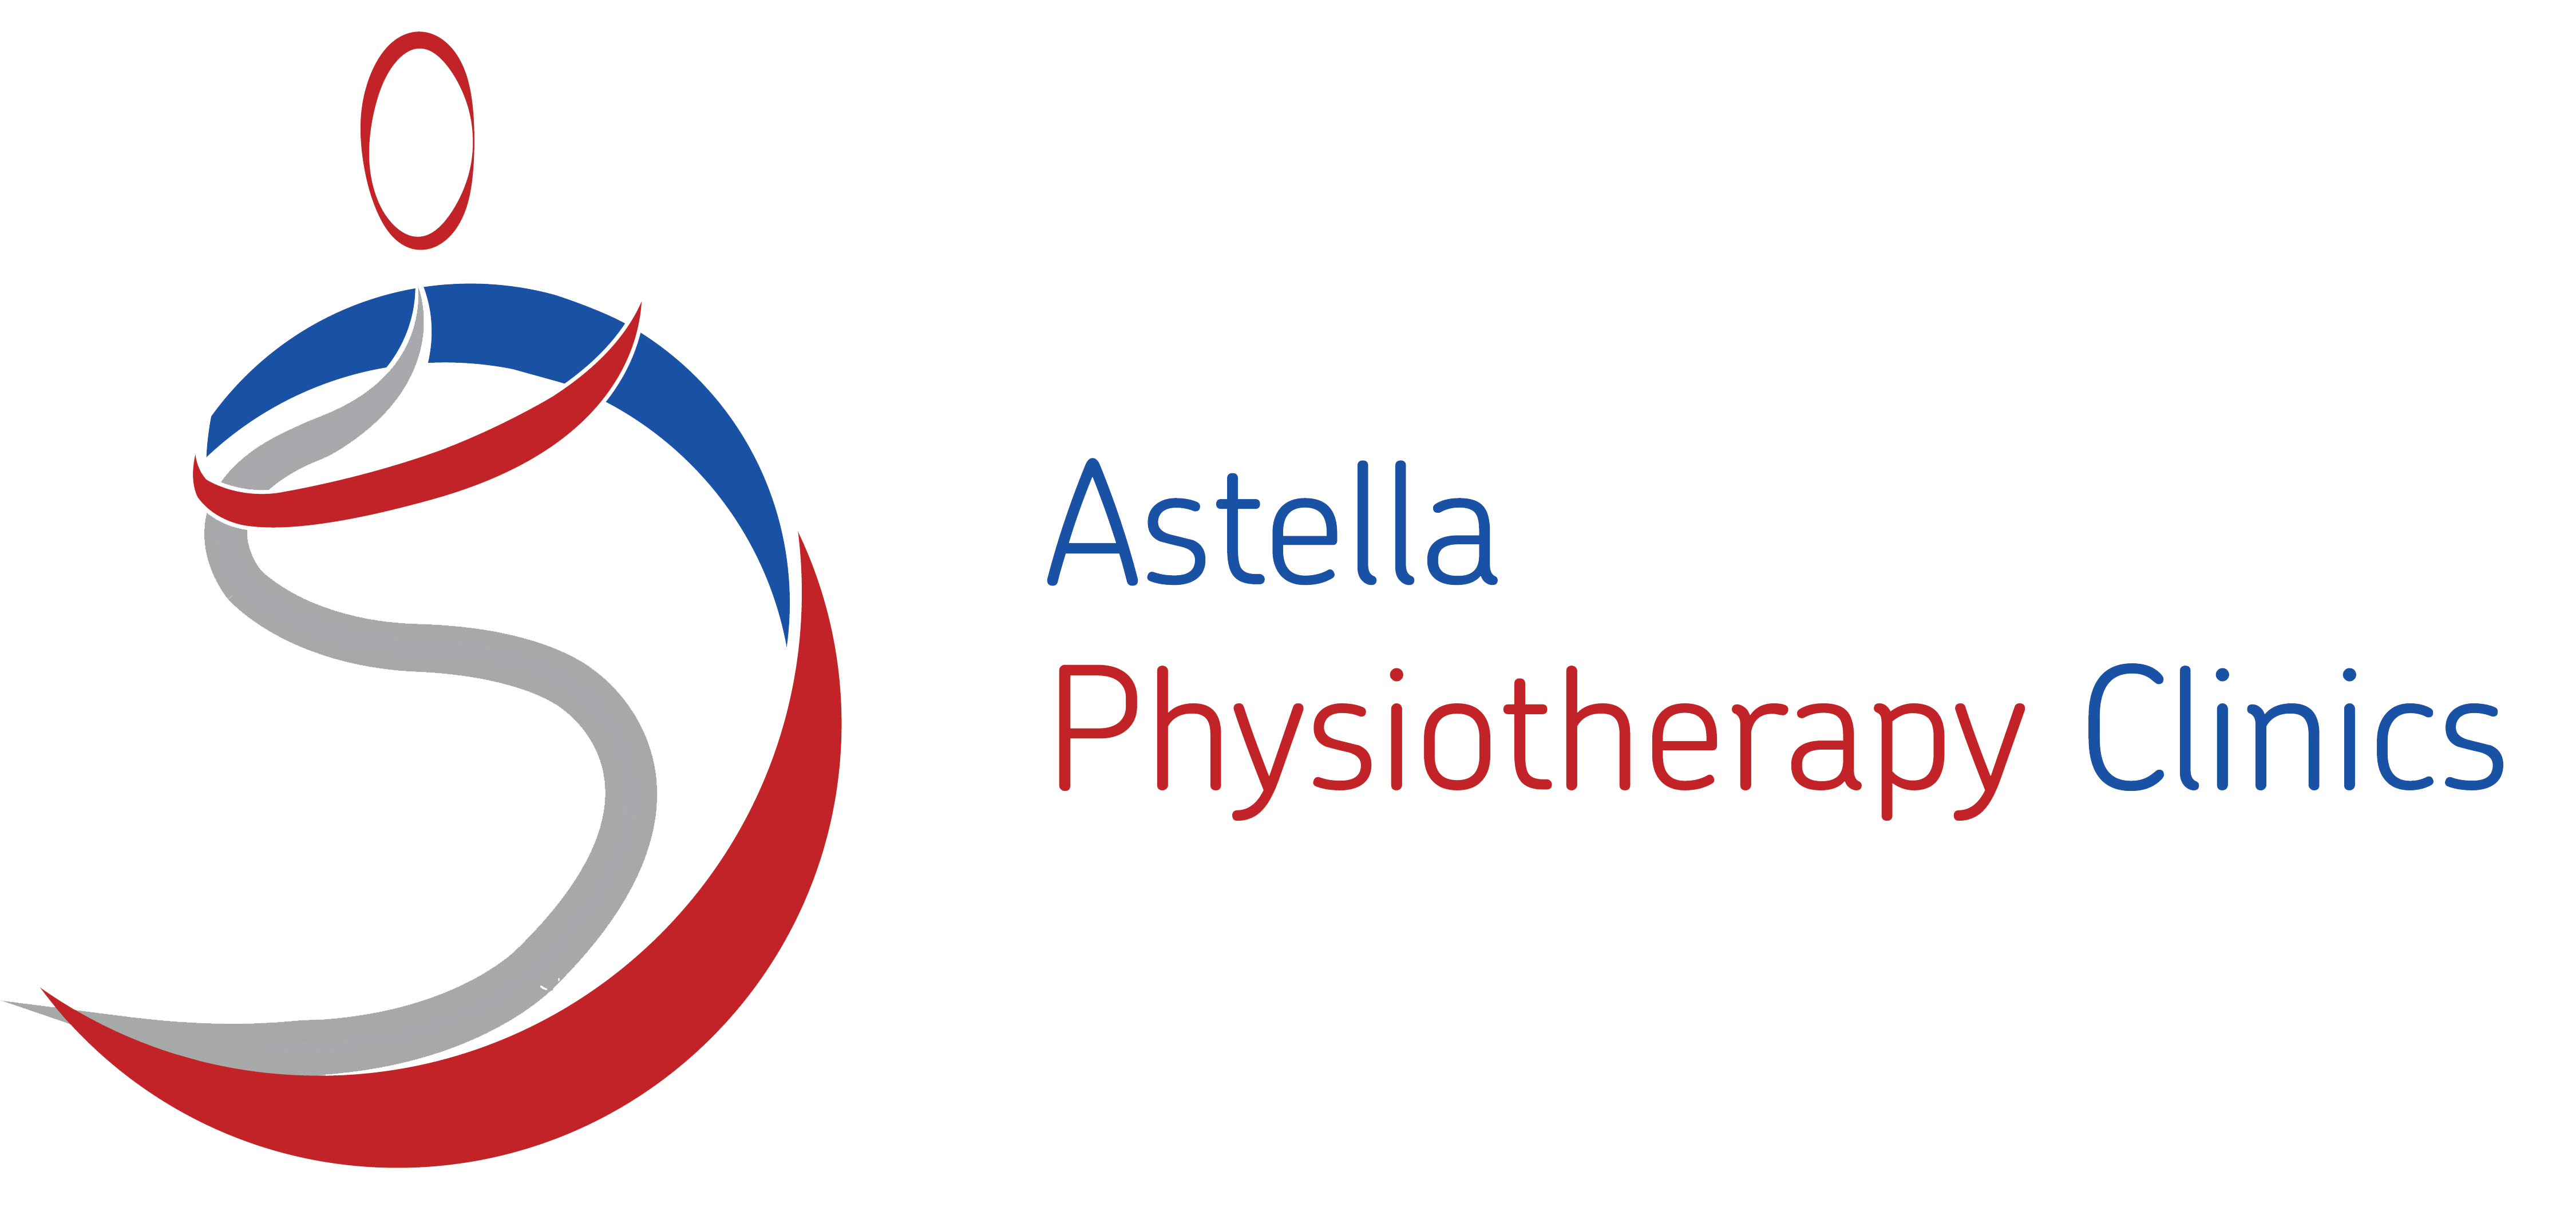 Astella Physiotherapy Clinics